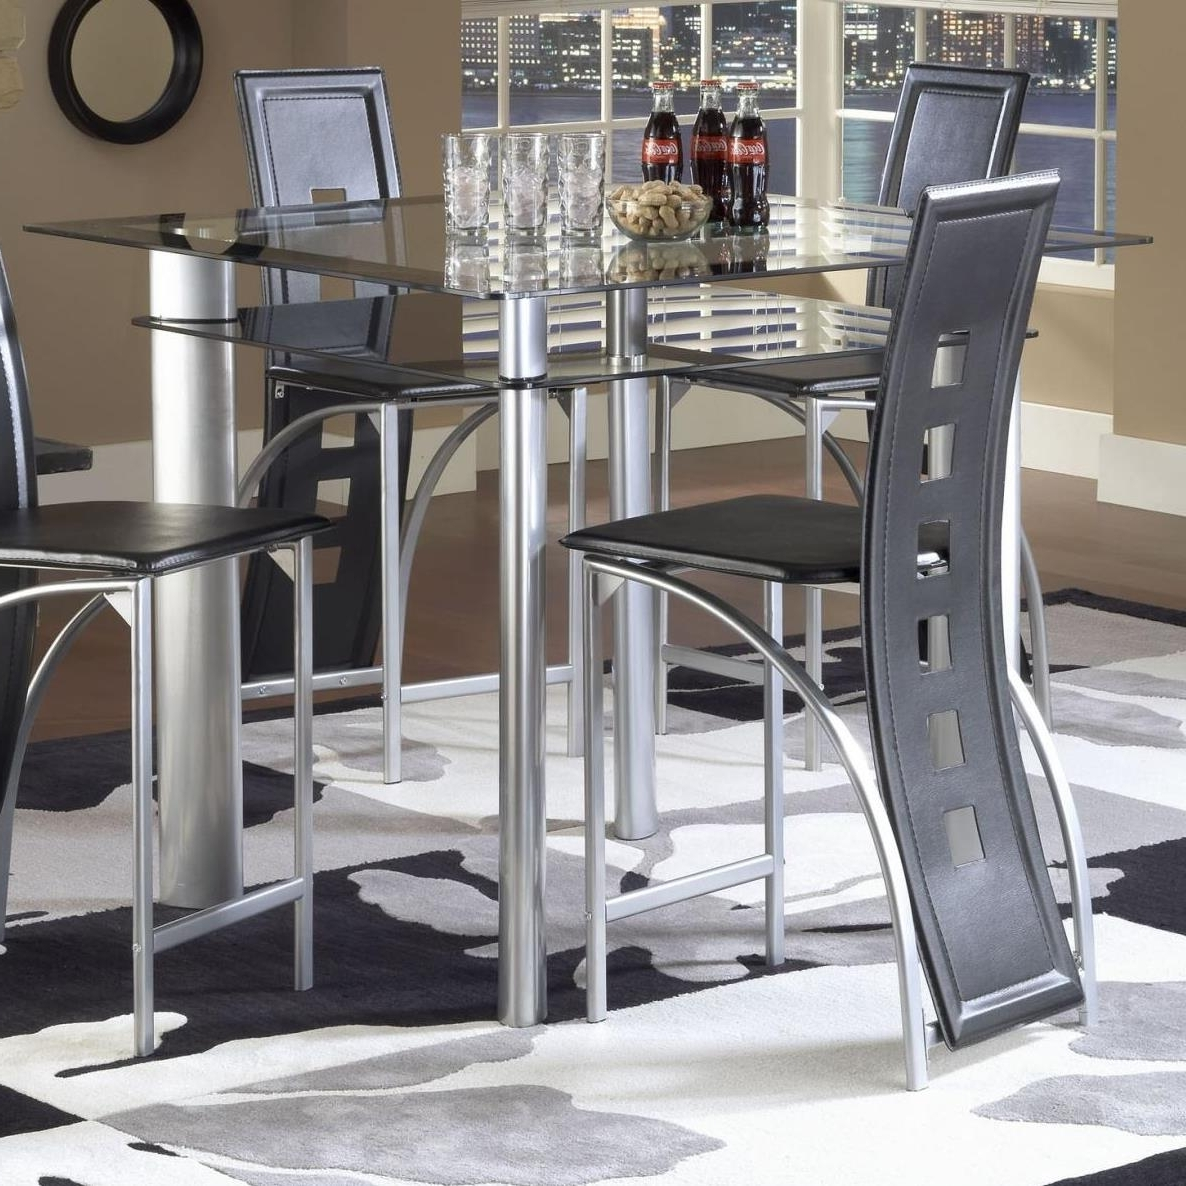 Smoked Glass Dining Tables And Chairs Inside Well Liked Bernards Astro Smoked Glass Counter Height Pub Table – Black / Satin (View 19 of 25)